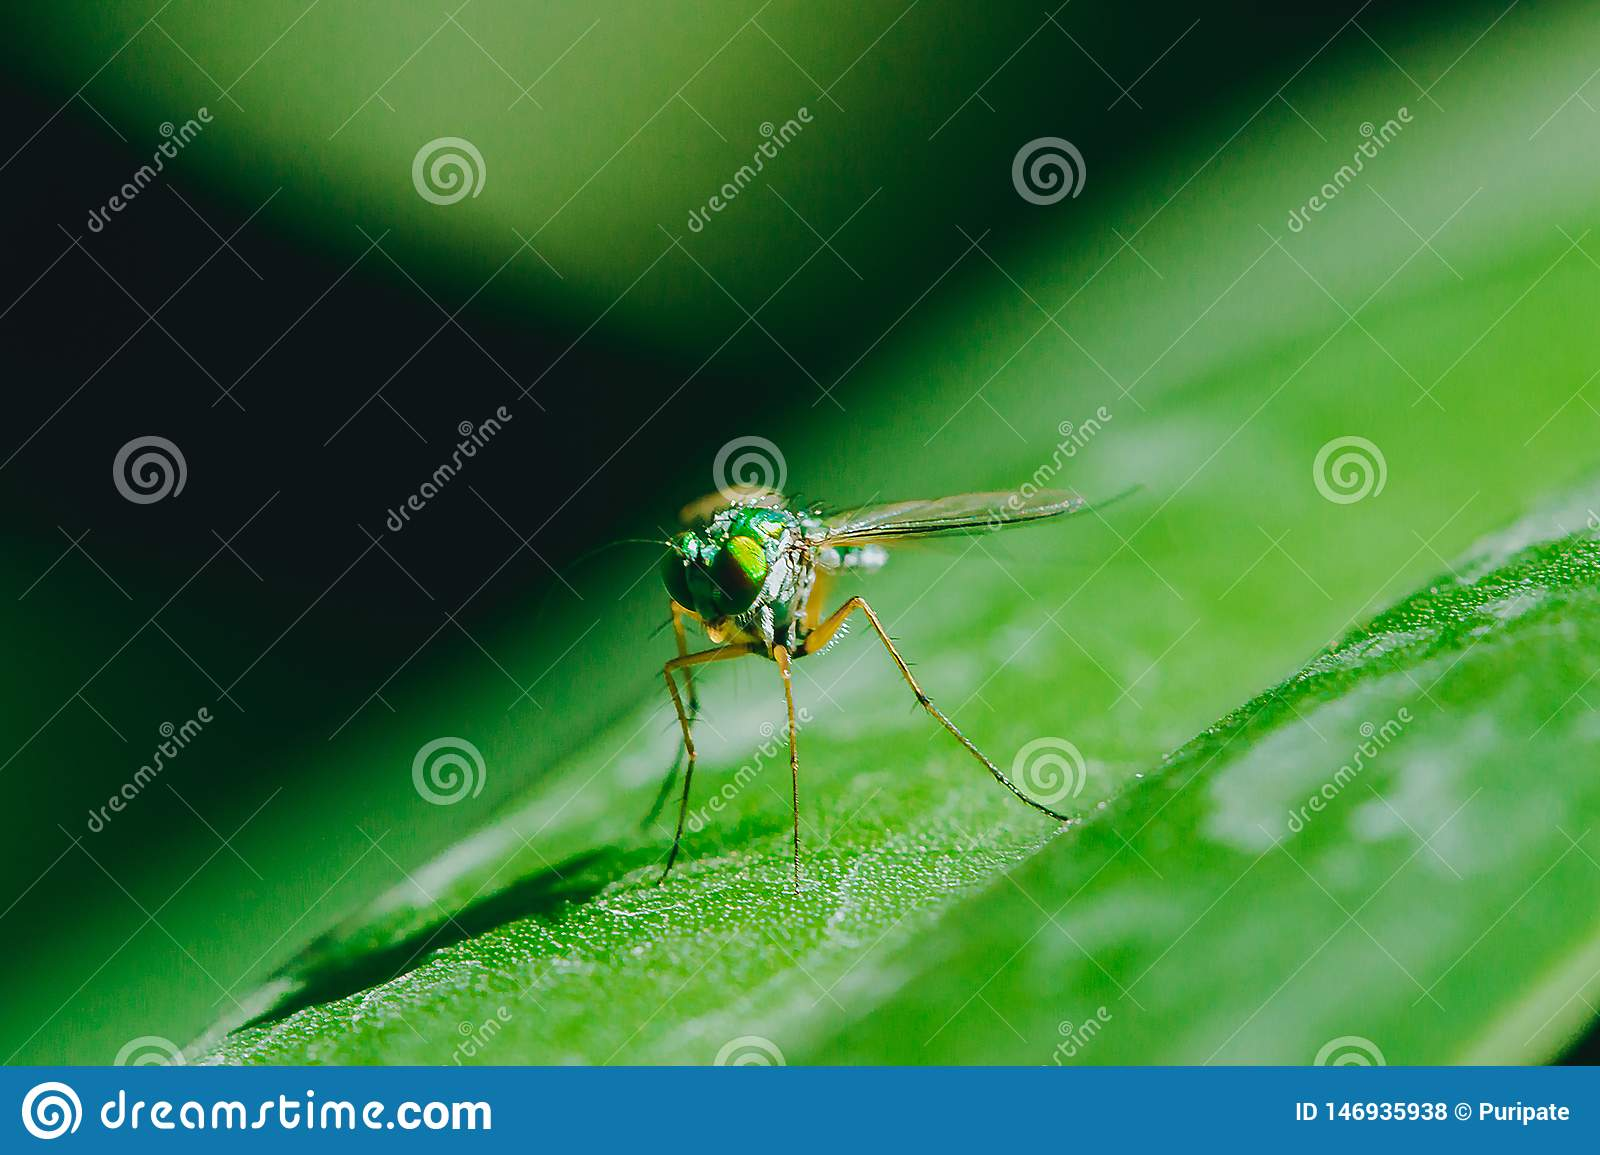 Dolichopodidae on the leaves are small, green body